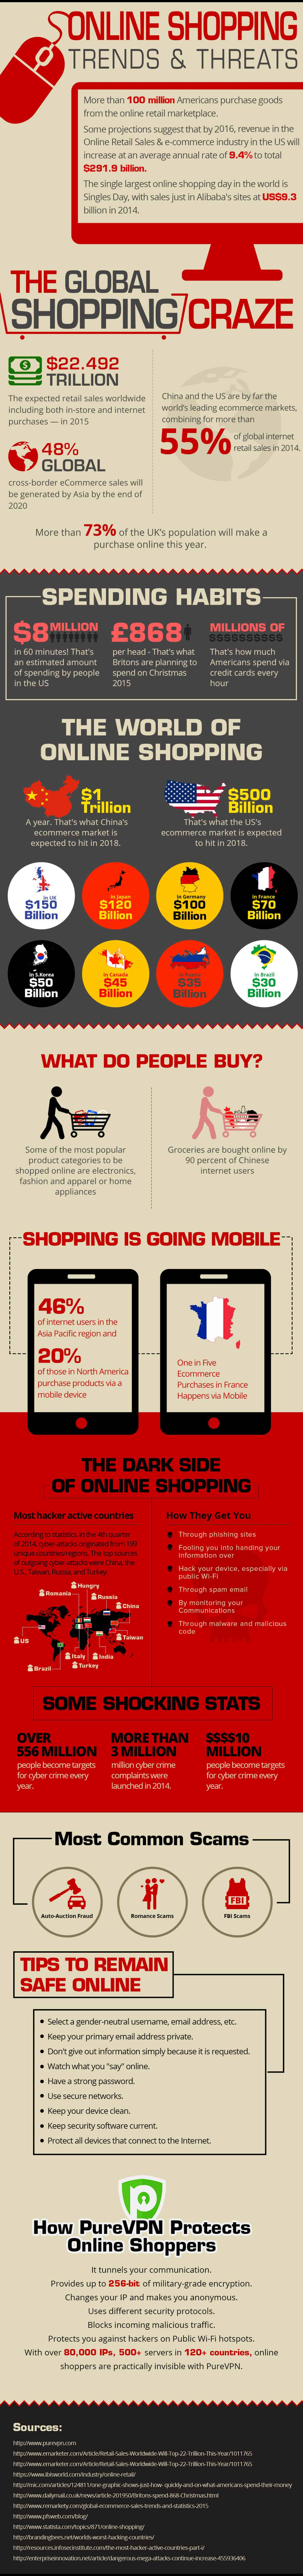 infographic-online-shopping